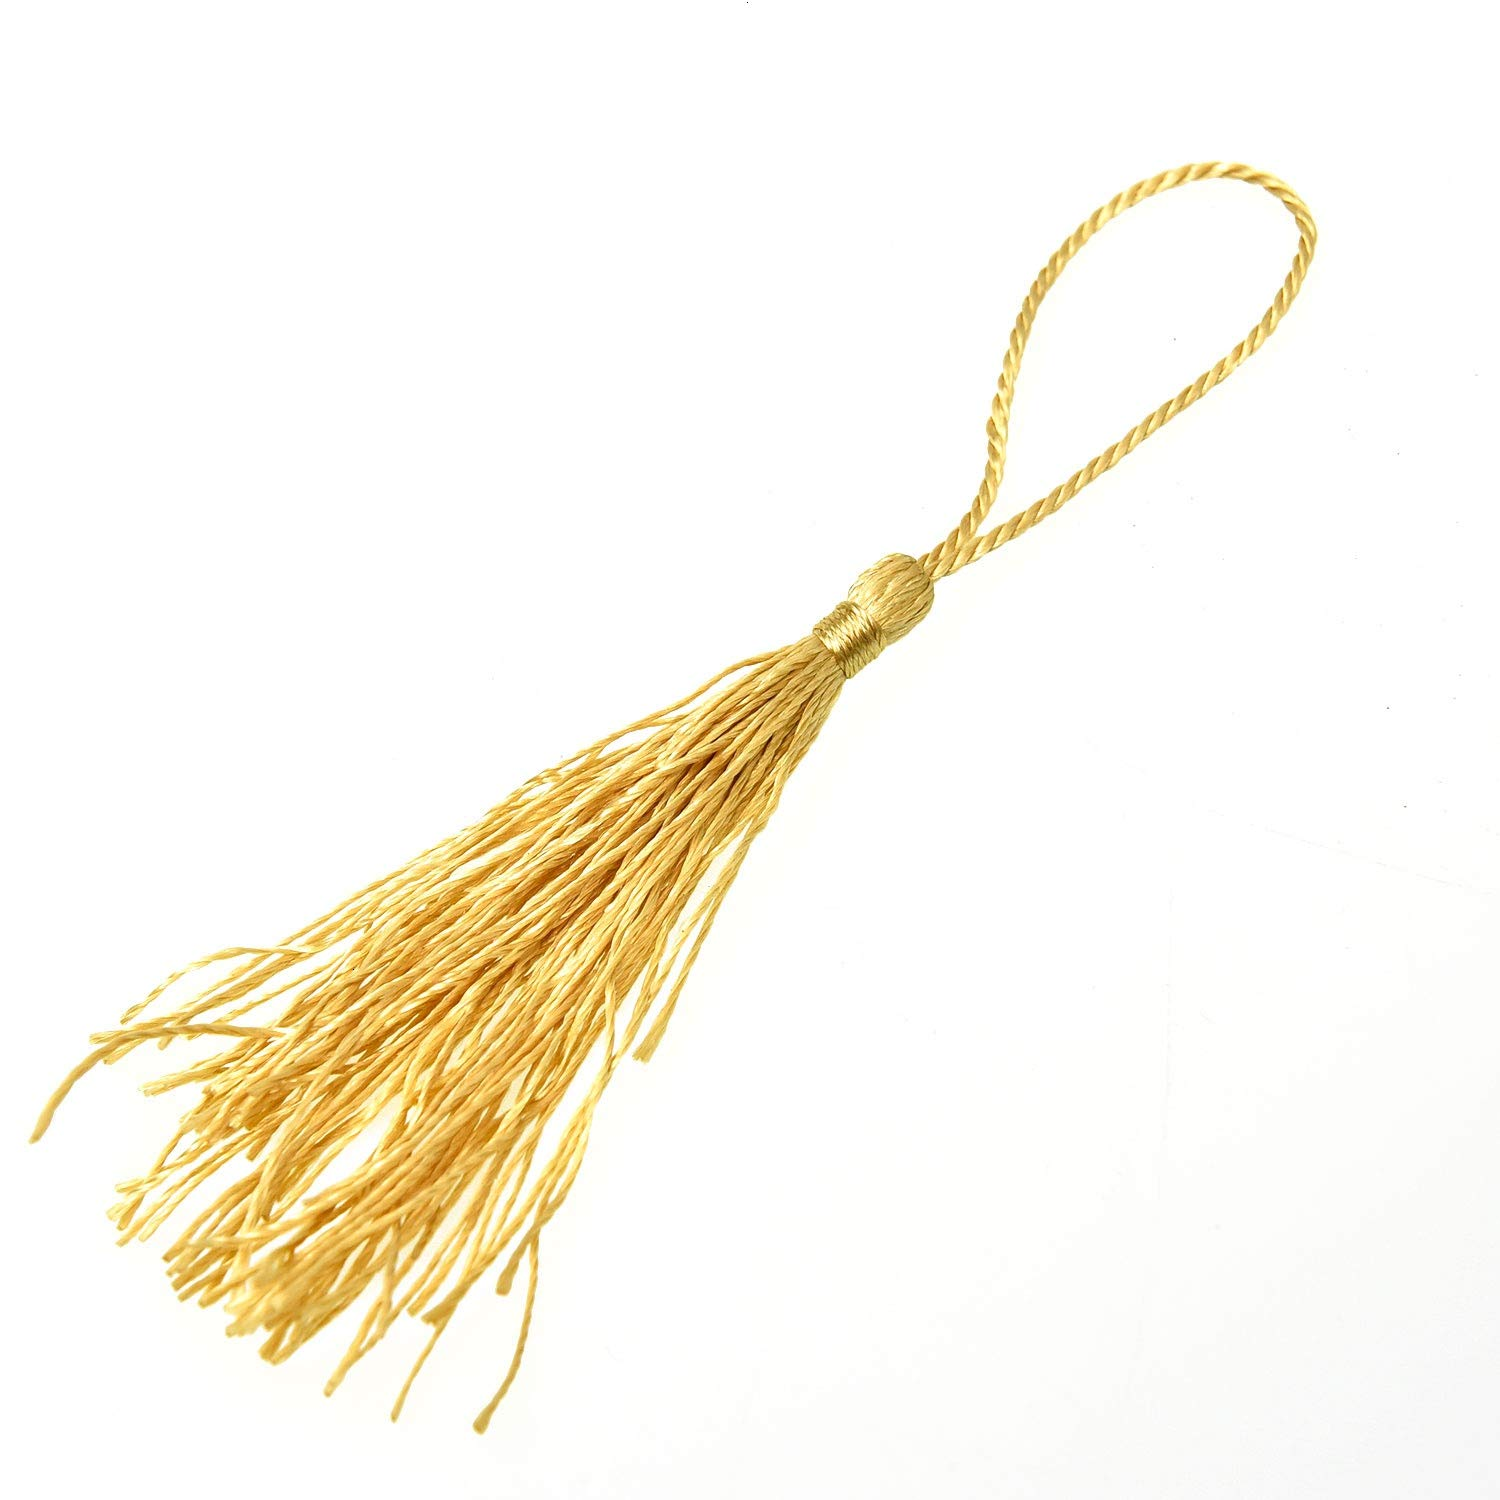 Souvenir Bookmarks DIY Craft Accessory Monrocco 200pcs Silky Handmade Soft Craft Mini Tassels with Loops for Jewelry Making